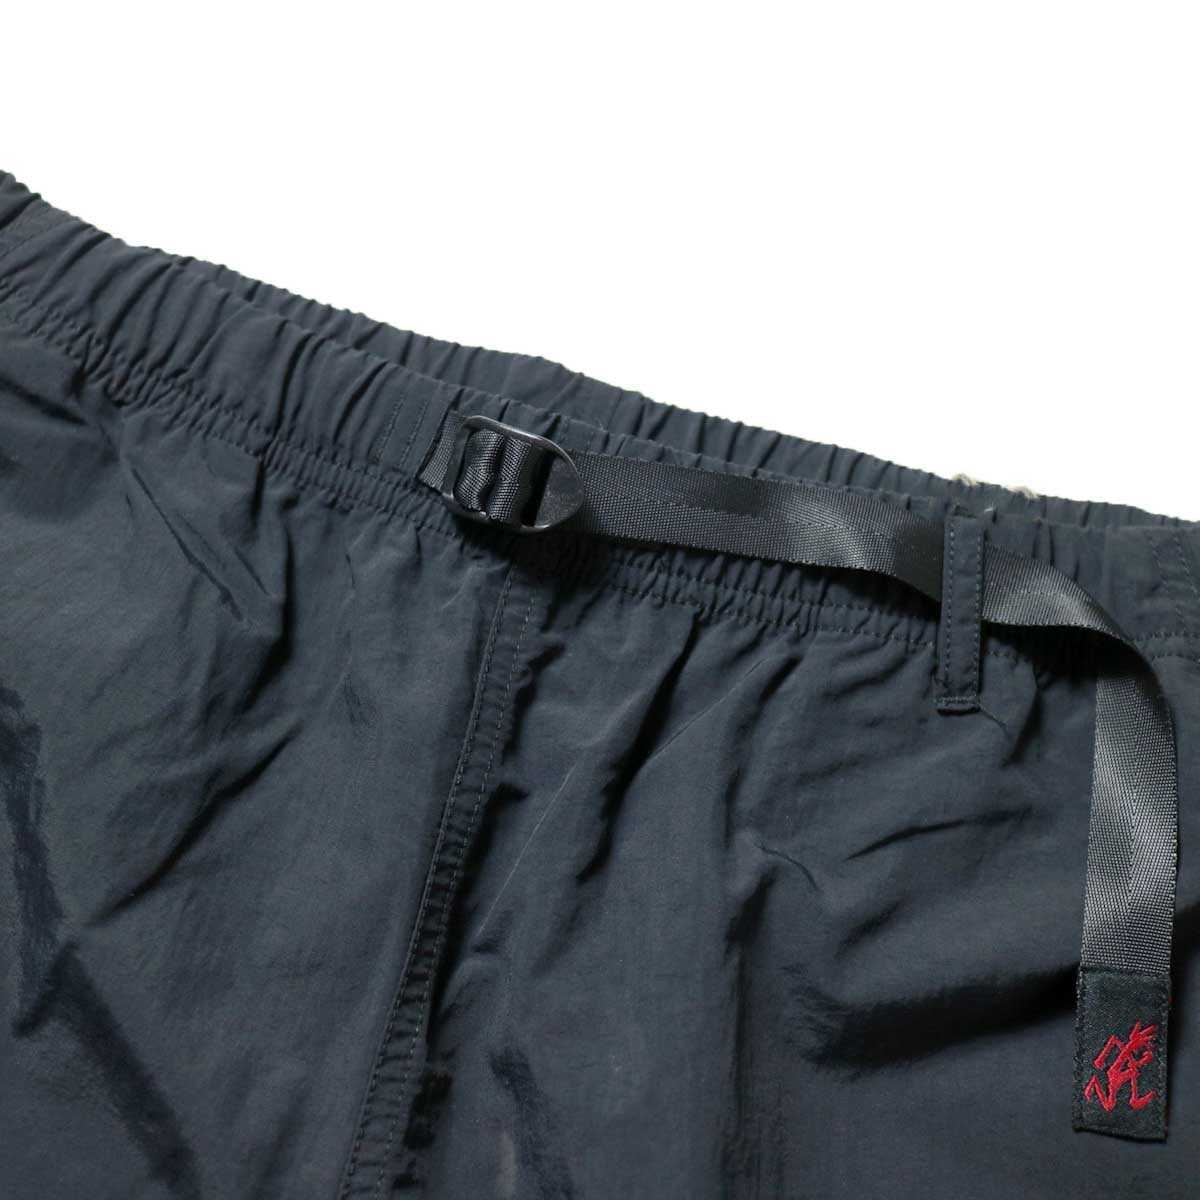 GRAMICCI / SHELL PACKABLE SHORTS (Black)ウエスト